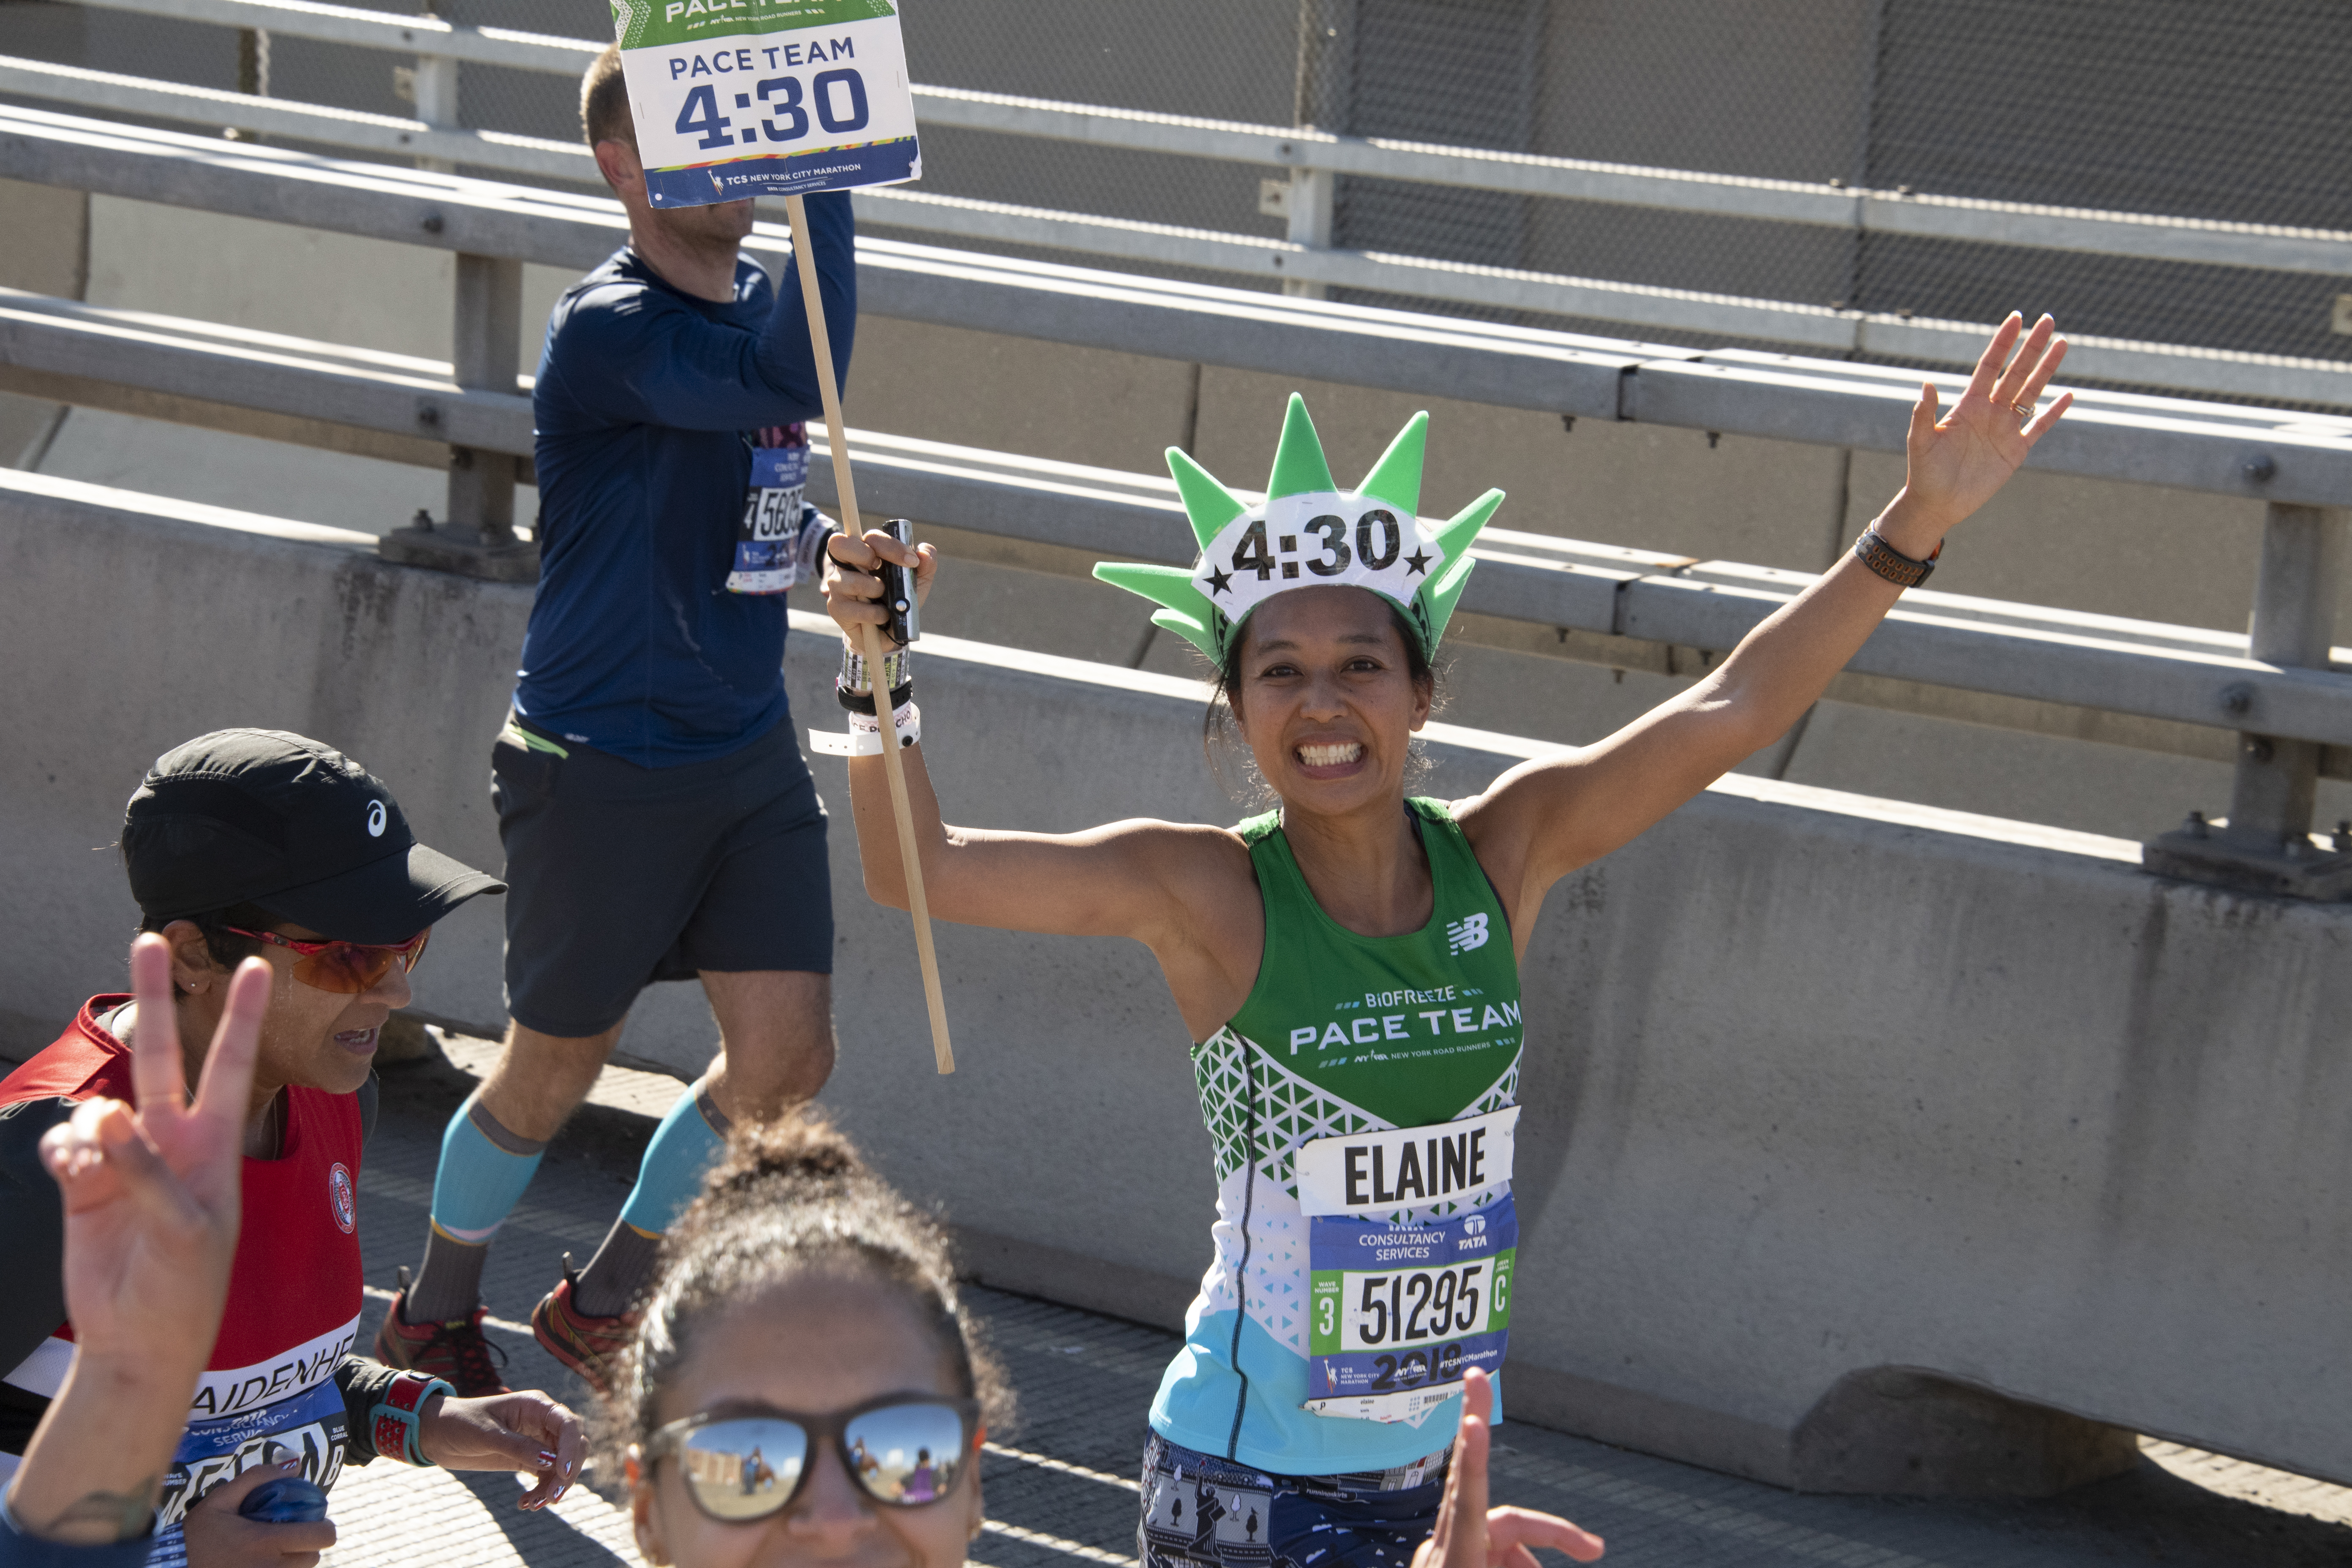 A member of the New York Road Runners pace team presented by Biofreeze guiding and holding up a sign for runners at the New York City Marathon